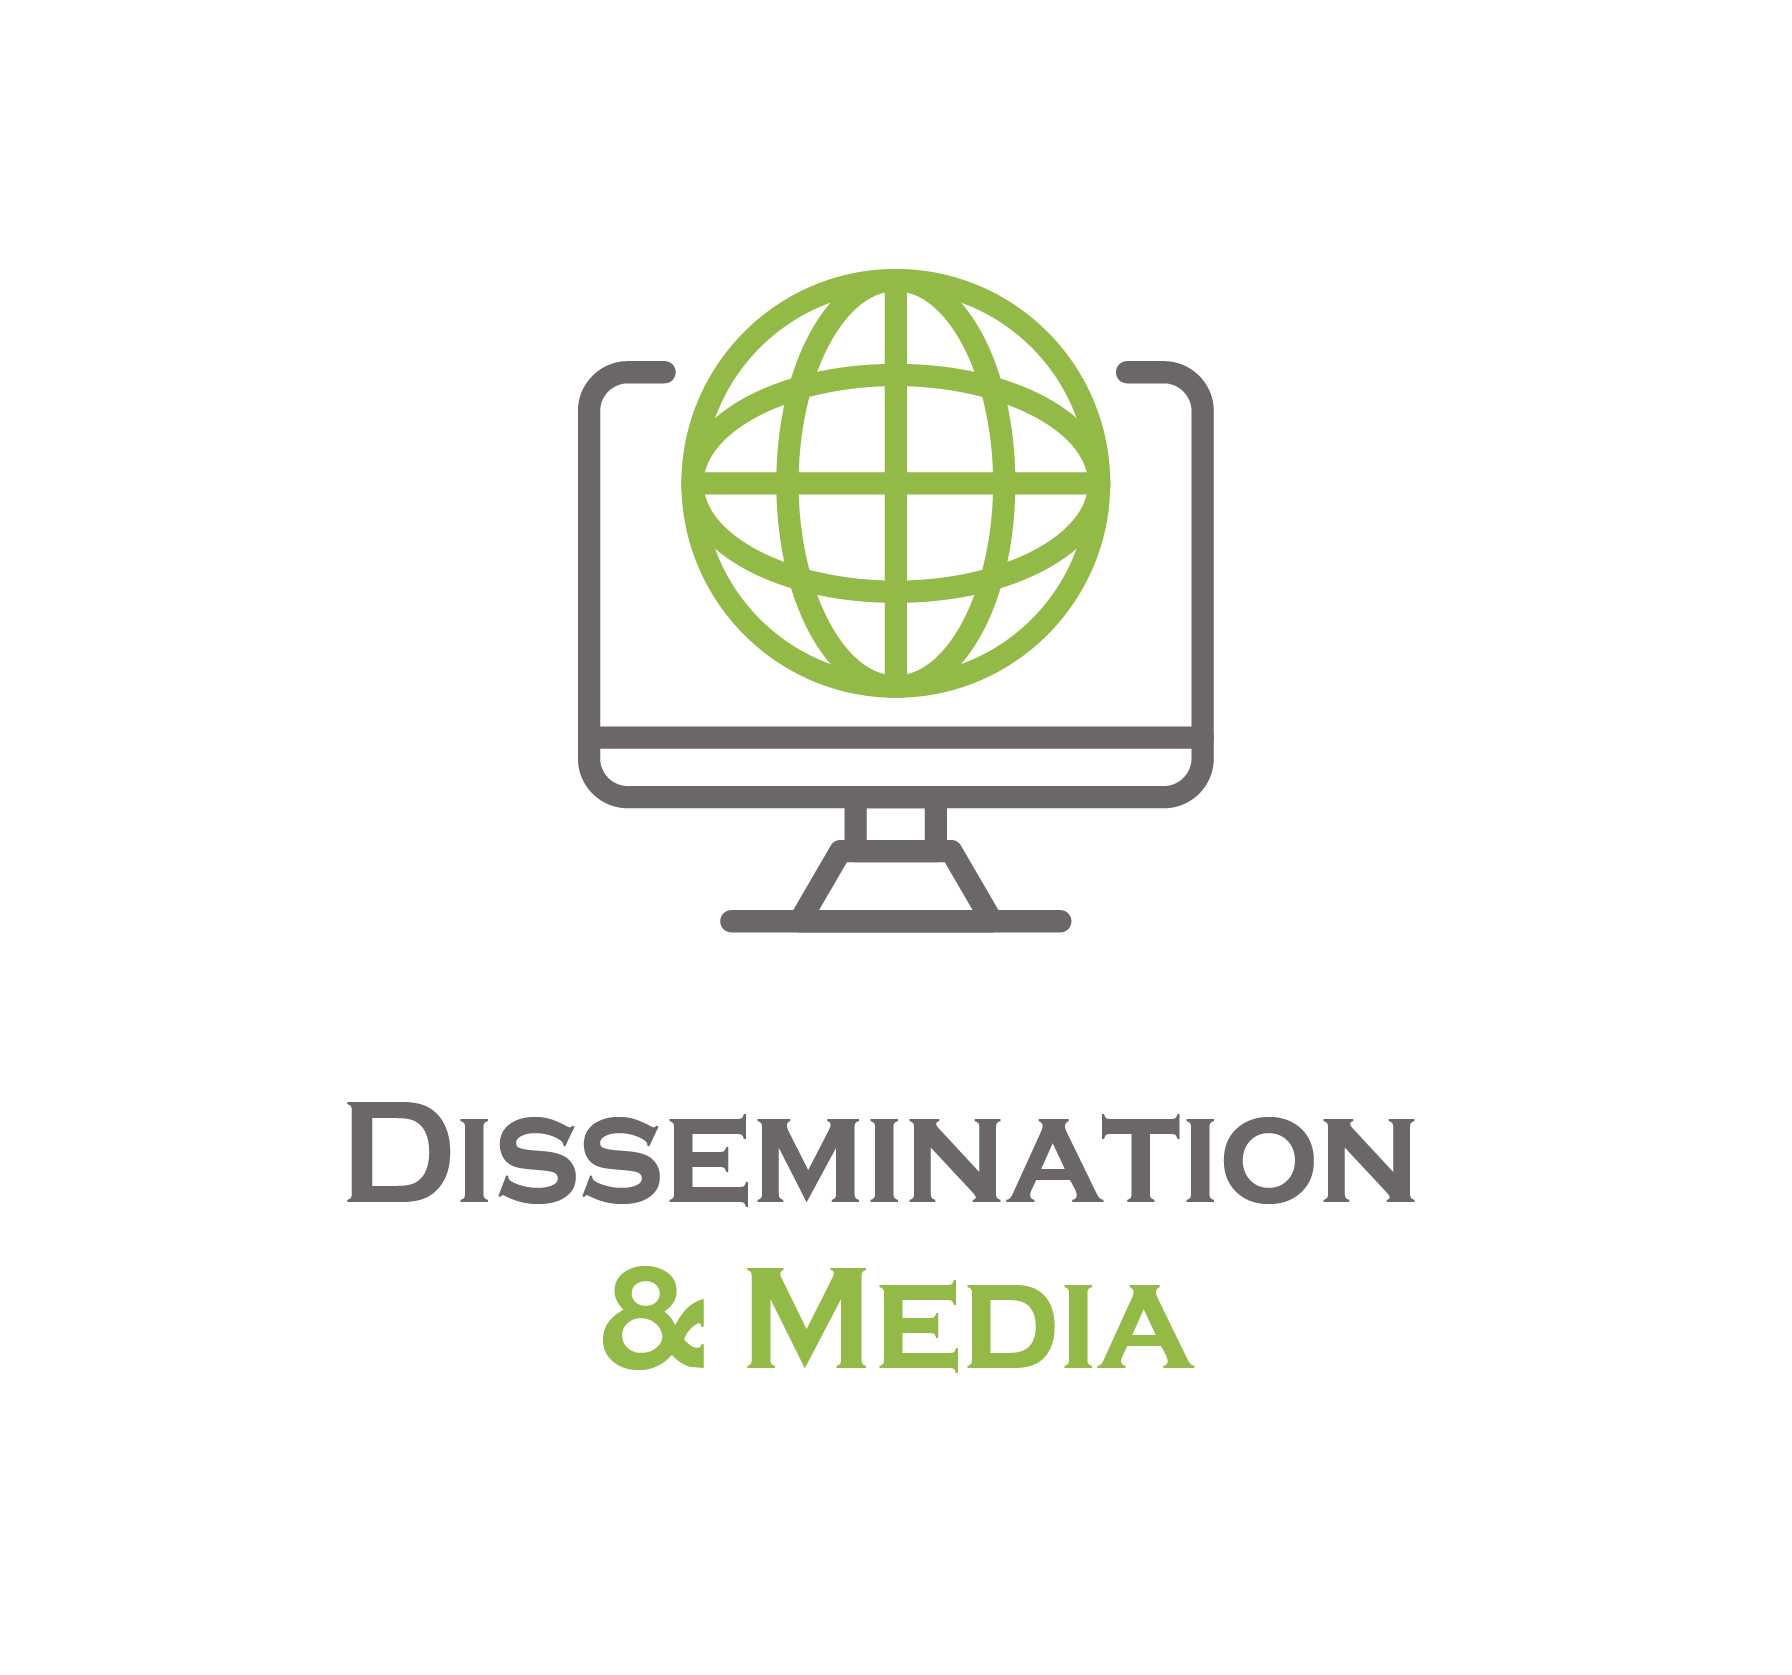 Dissemination and Media